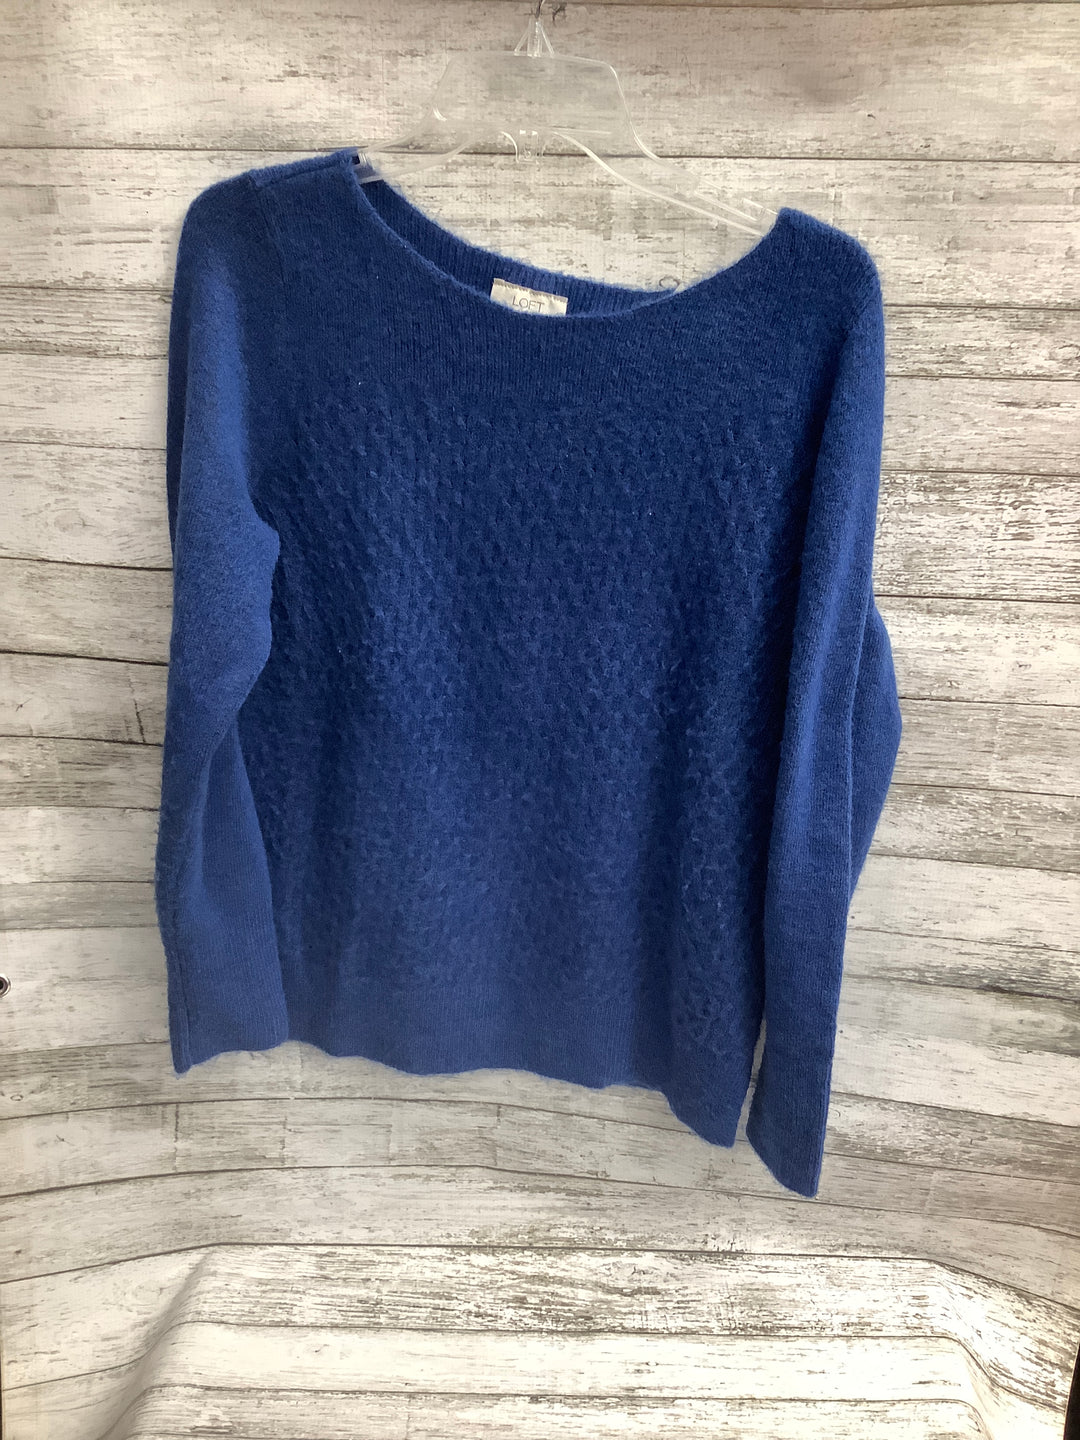 Primary Photo - brand: ann taylor loft o , style: sweater , color: blue , size: l , sku: 105-5184-764